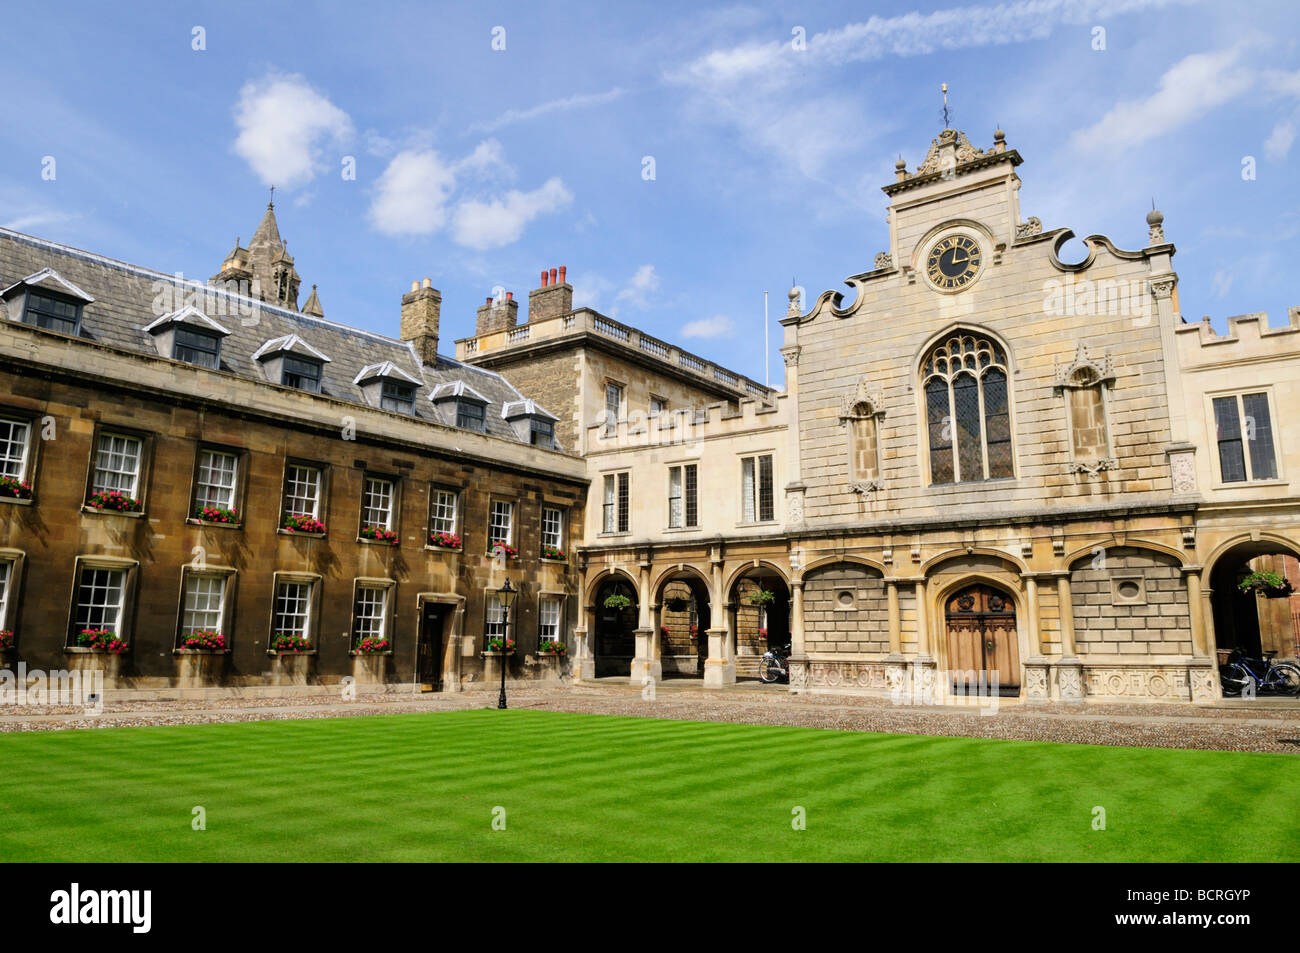 Peterhouse College, Cambridge England UK - Stock Image